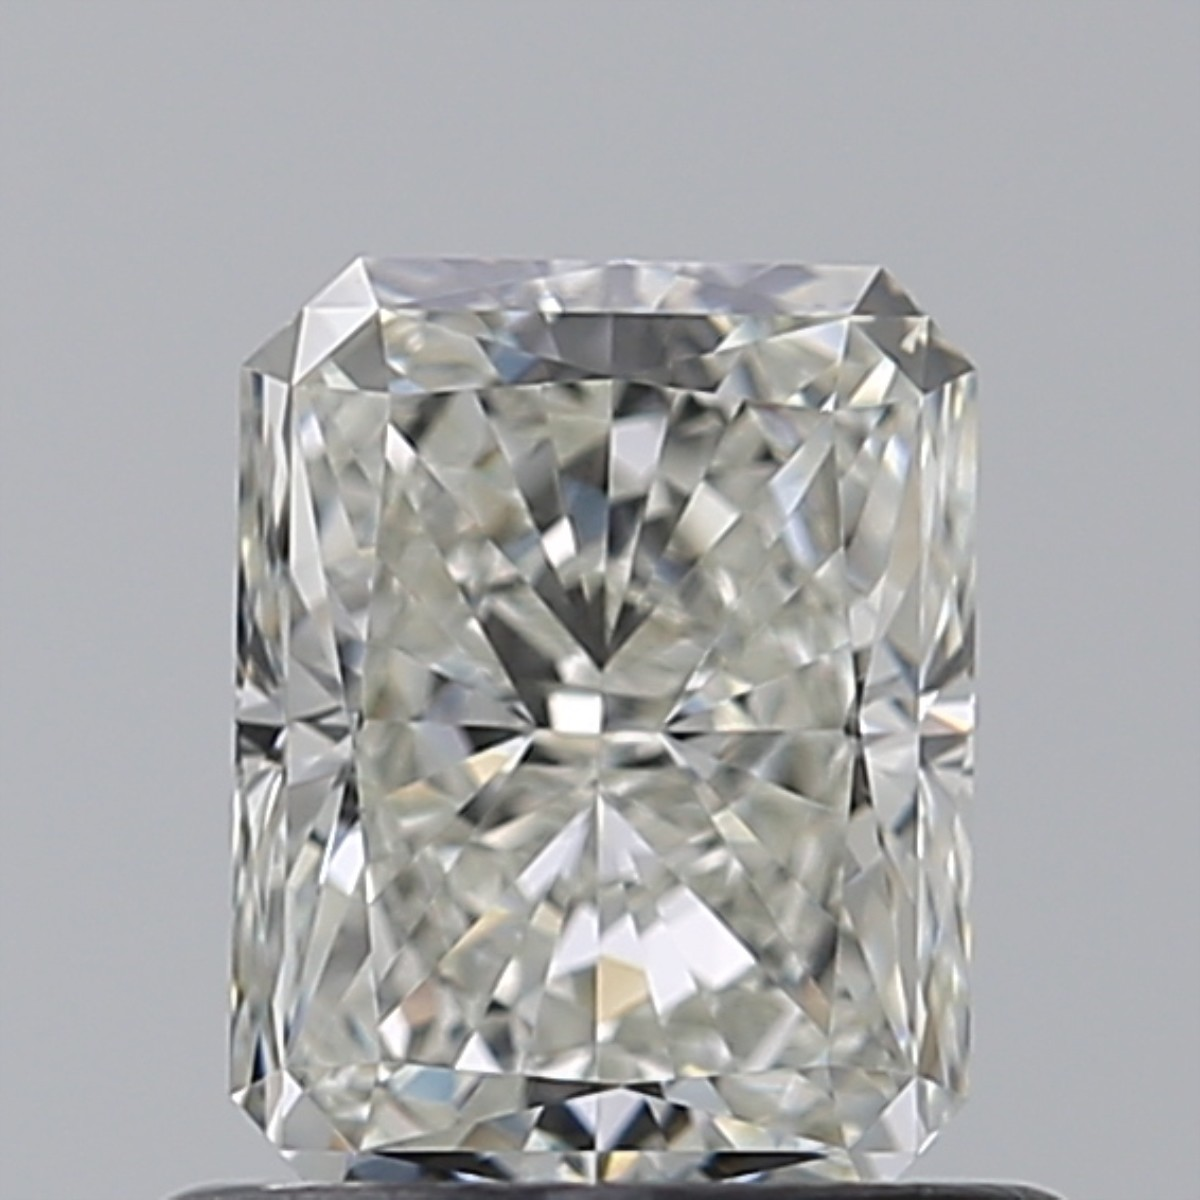 0.76 Carat Radiant Diamond (I/VVS2)